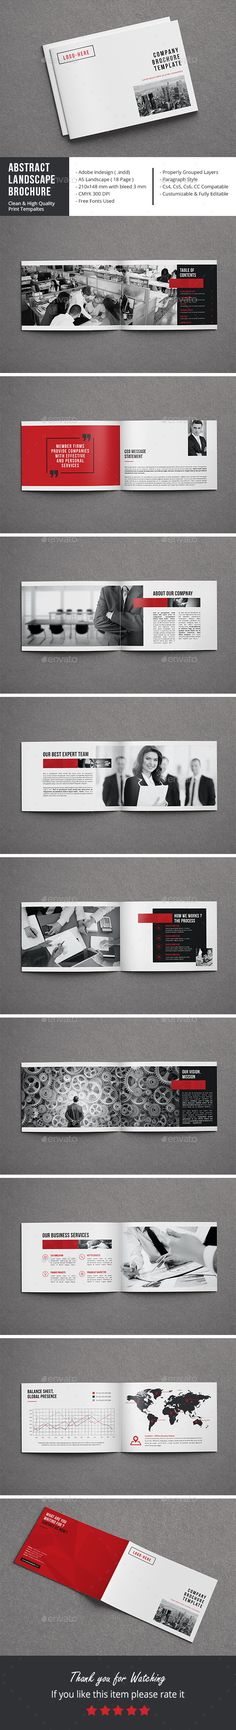 Abstract Landscape Brochure  InDesign Template • Download ➝ https://graphicriver.net/item/abstract-landscape-brochure/17111876?ref=pxcr